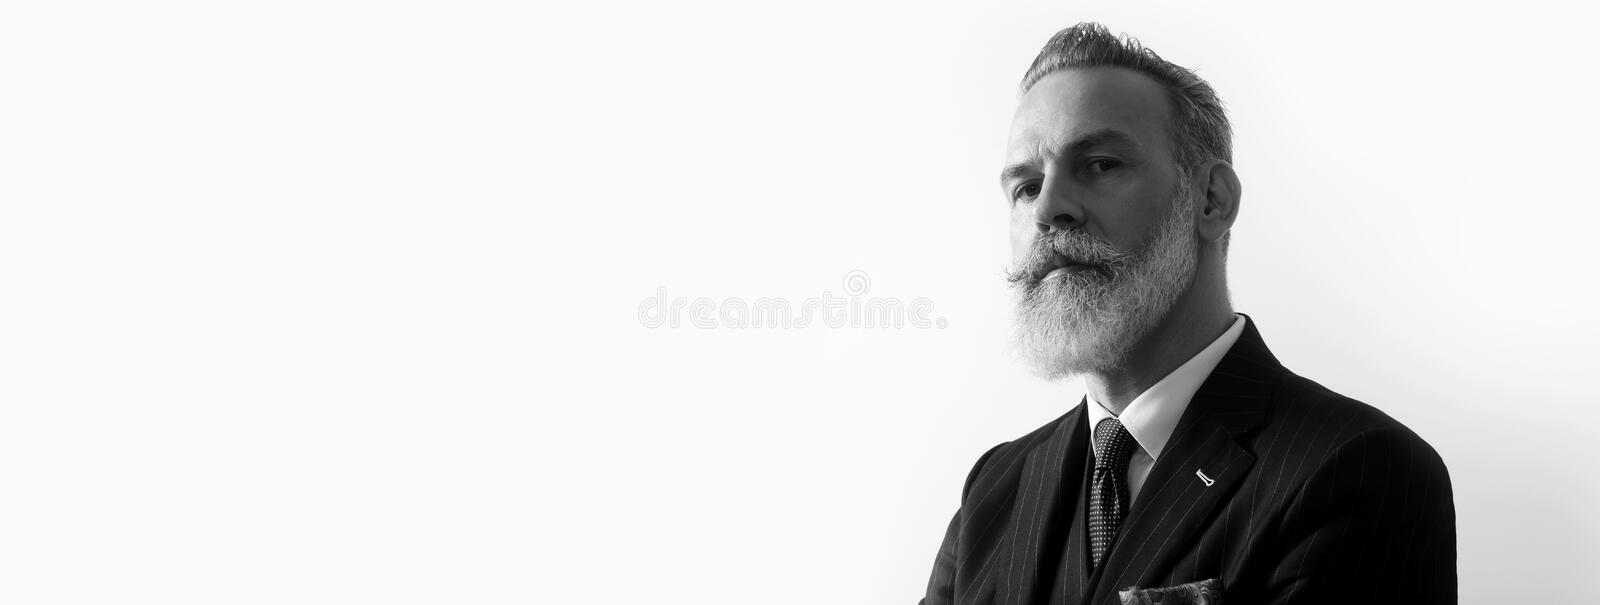 Portrait of bearded handsome gentleman wearing trendy suit over empty white background. Copy Paste text space. Wide. Black and White stock photo